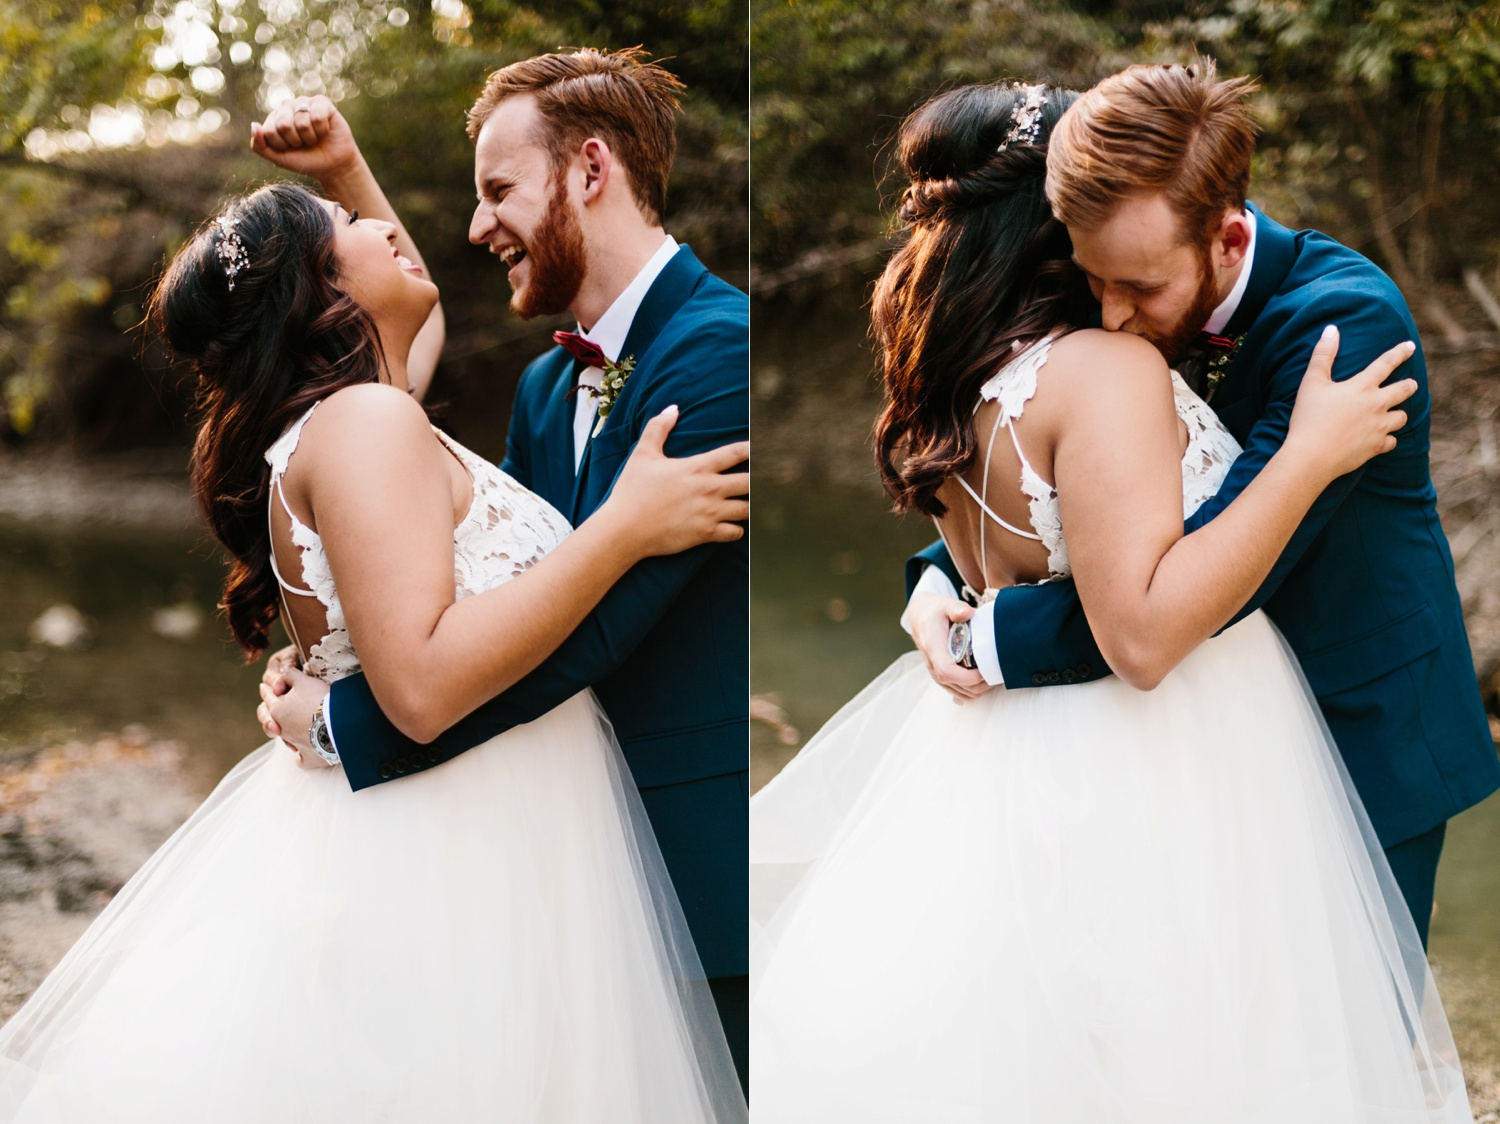 Grant + Lysette | a vibrant, deep burgundy and navy, and mixed metals wedding at Hidden Pines Chapel by North Texas Wedding Photographer Rachel Meagan Photography 211